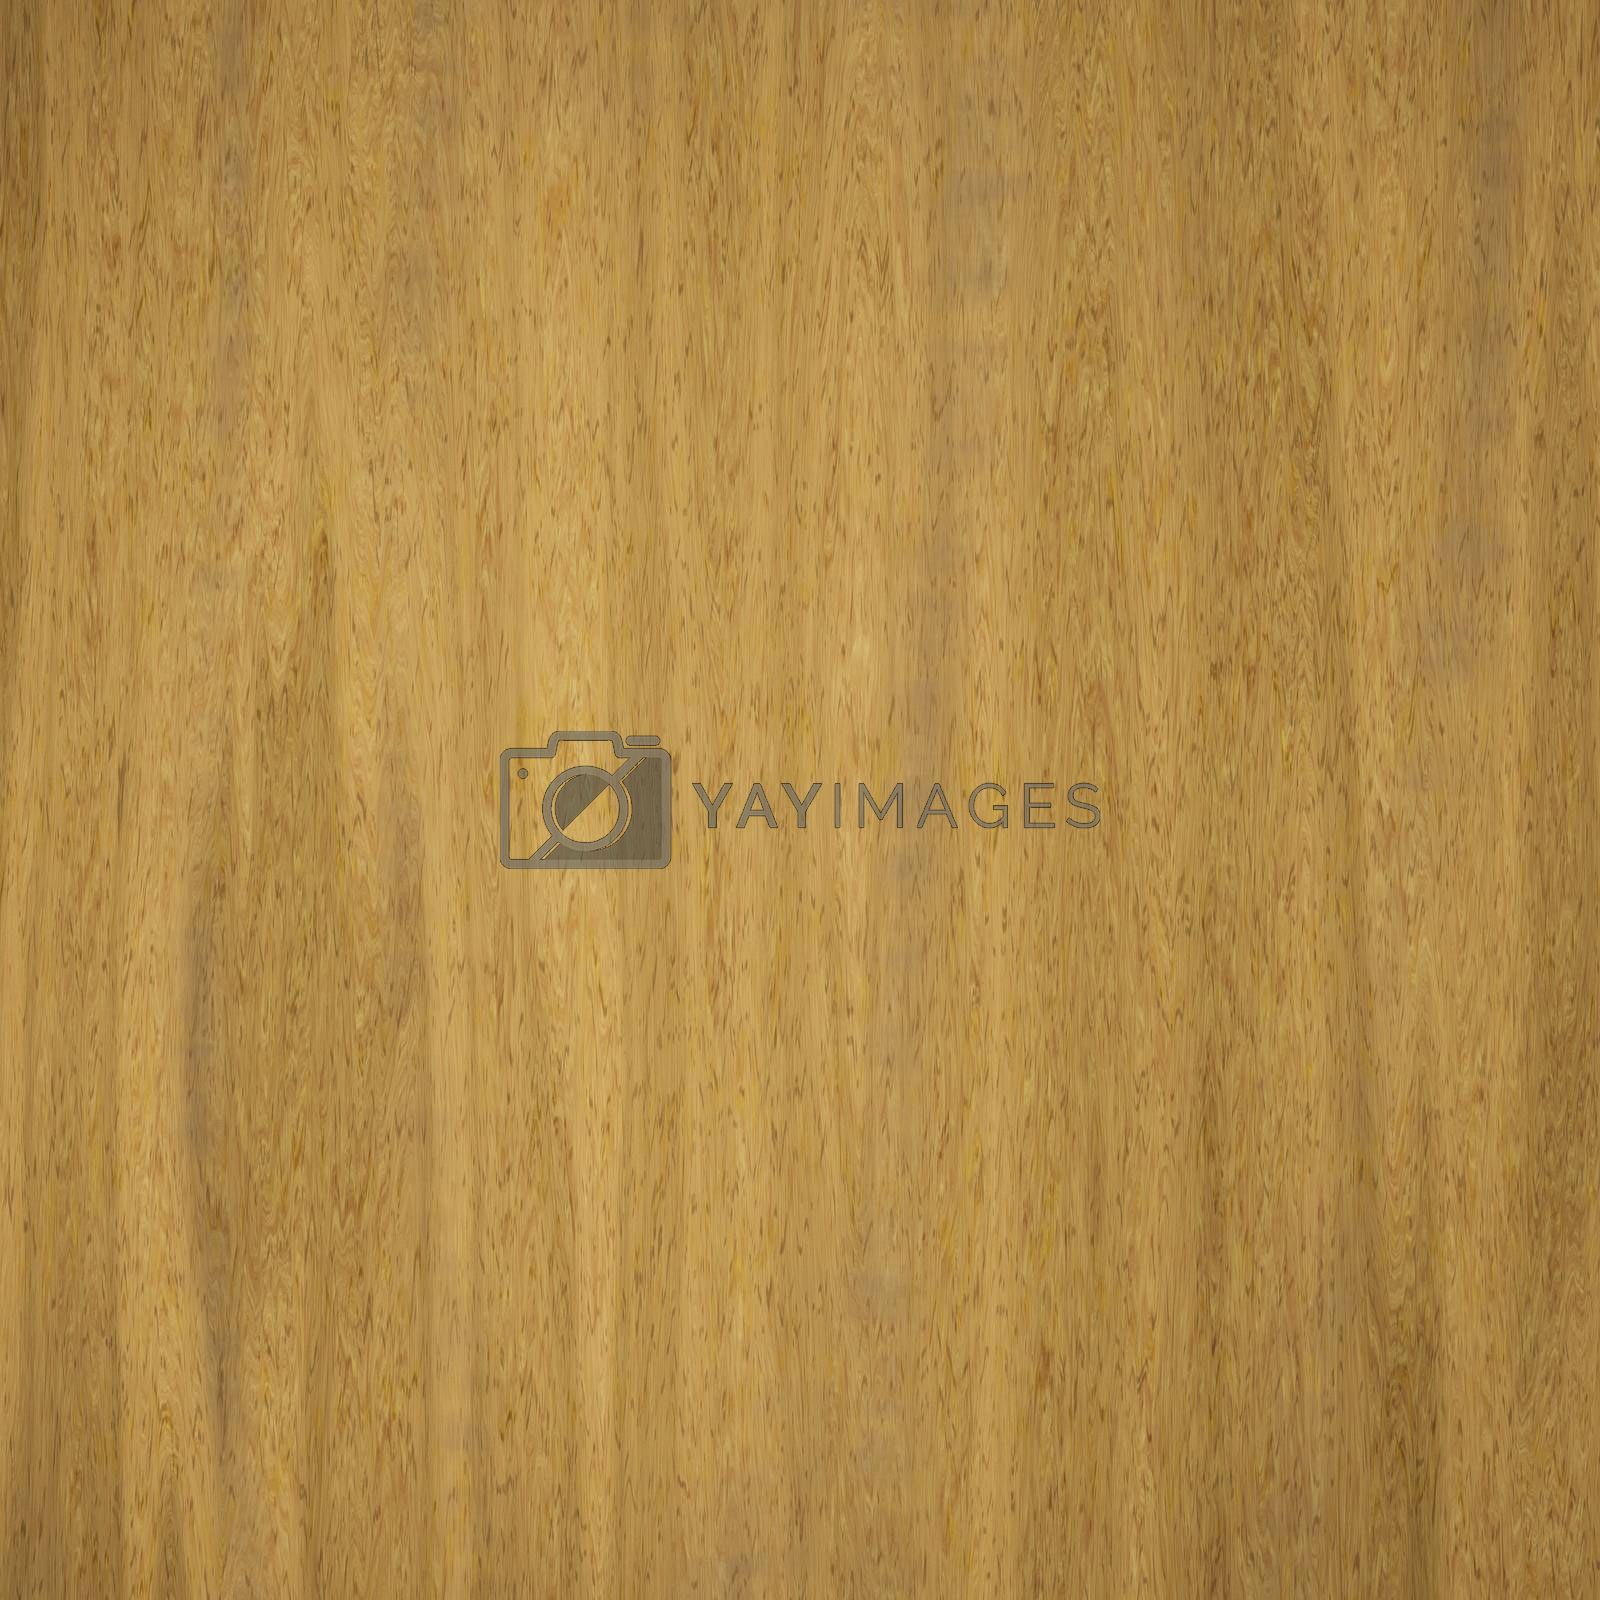 A typical honey color wooden background